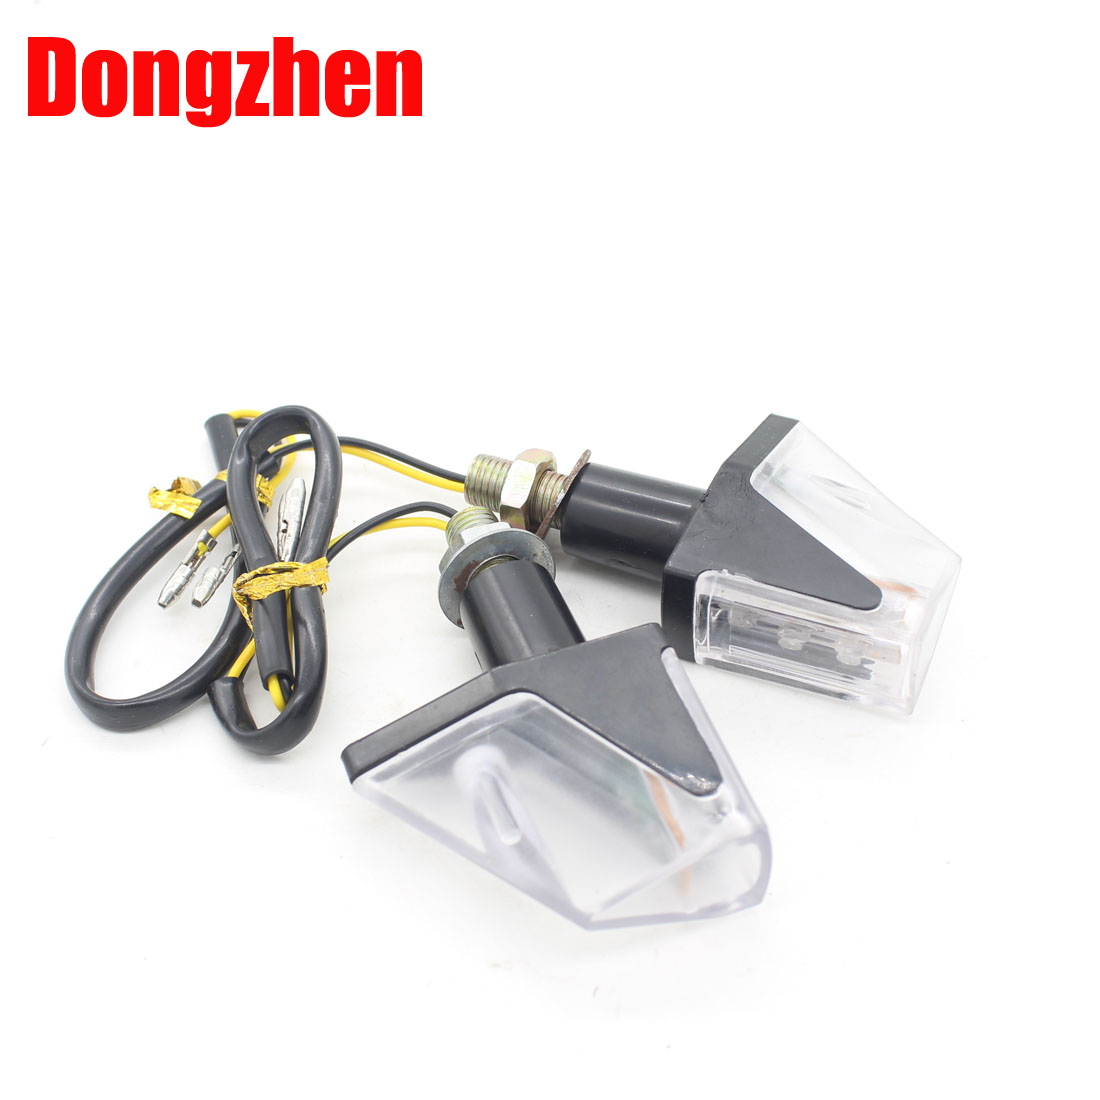 Dongzhen motorcycle LED turn signal light universal motorcycles indicator light black color brand new hot sale style 2pcs